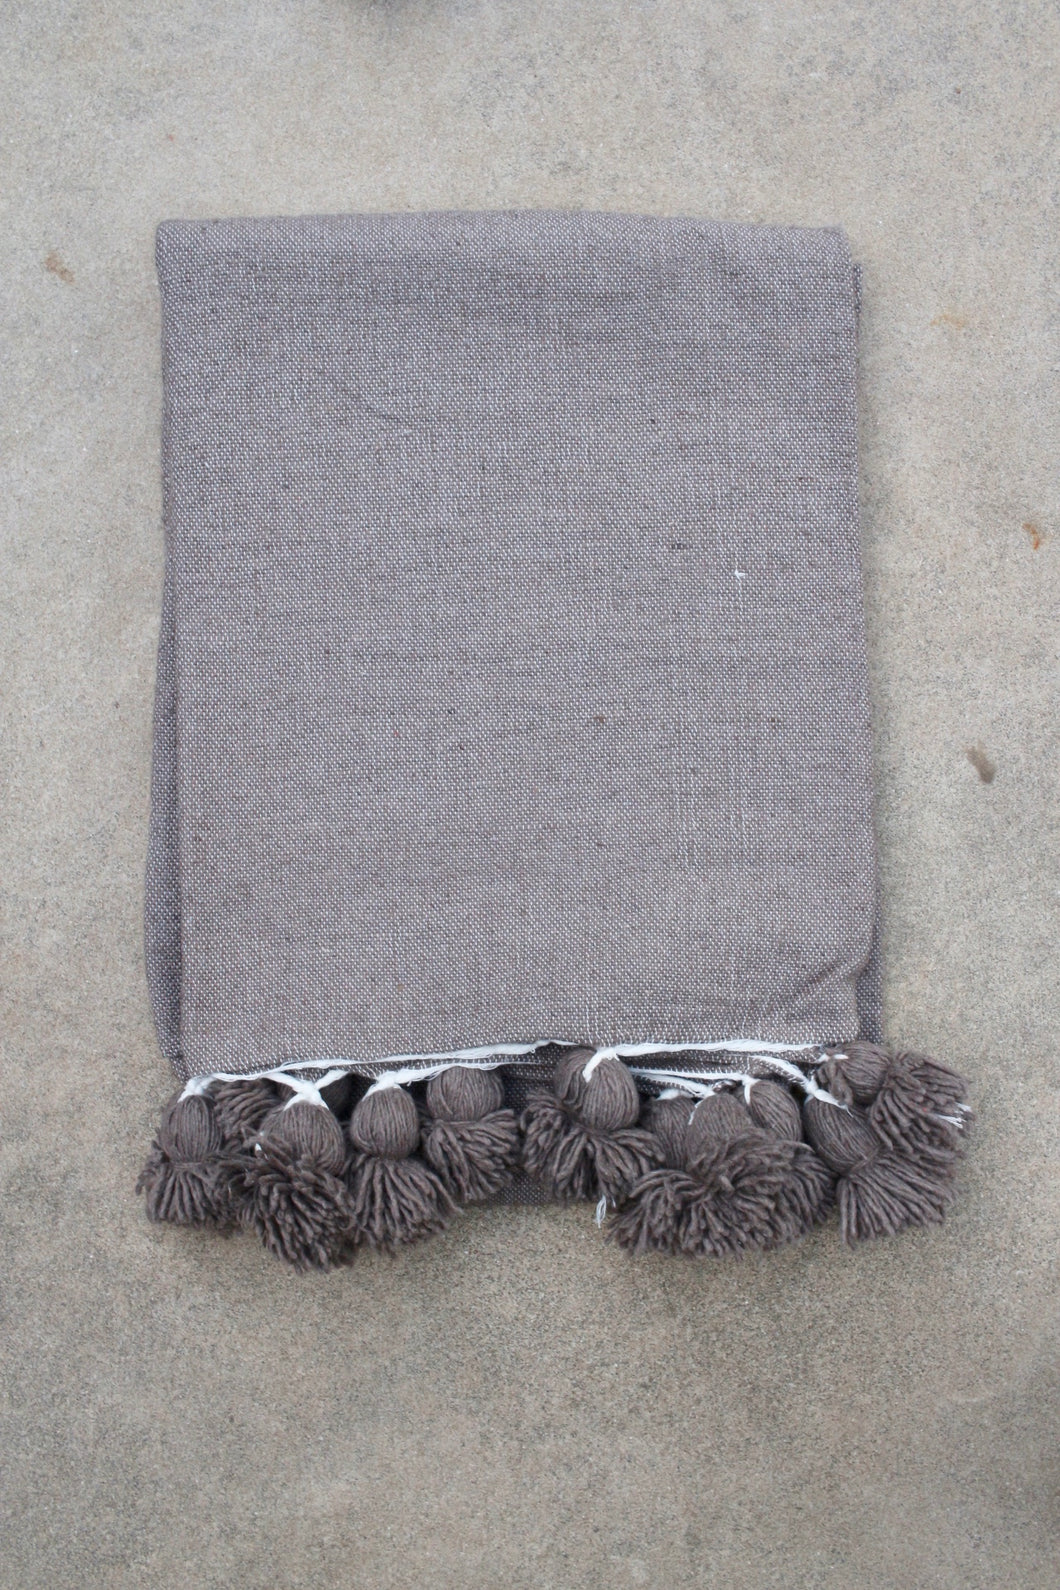 Pom Pom Blanket - Solid Warm Charcoal